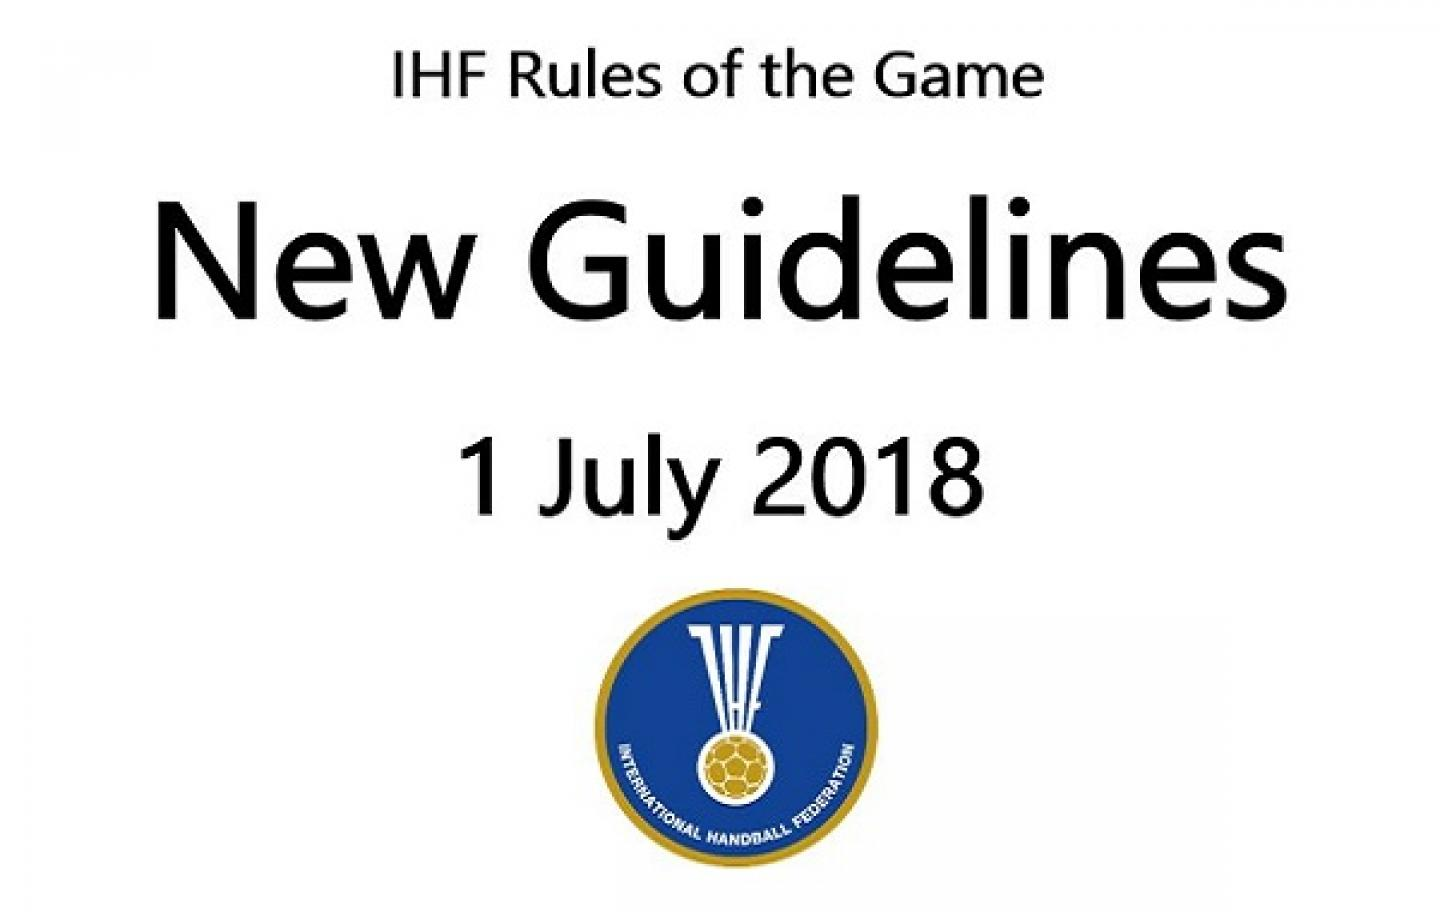 Updated Guidelines and Interpretations of the IHF Rules of the Game